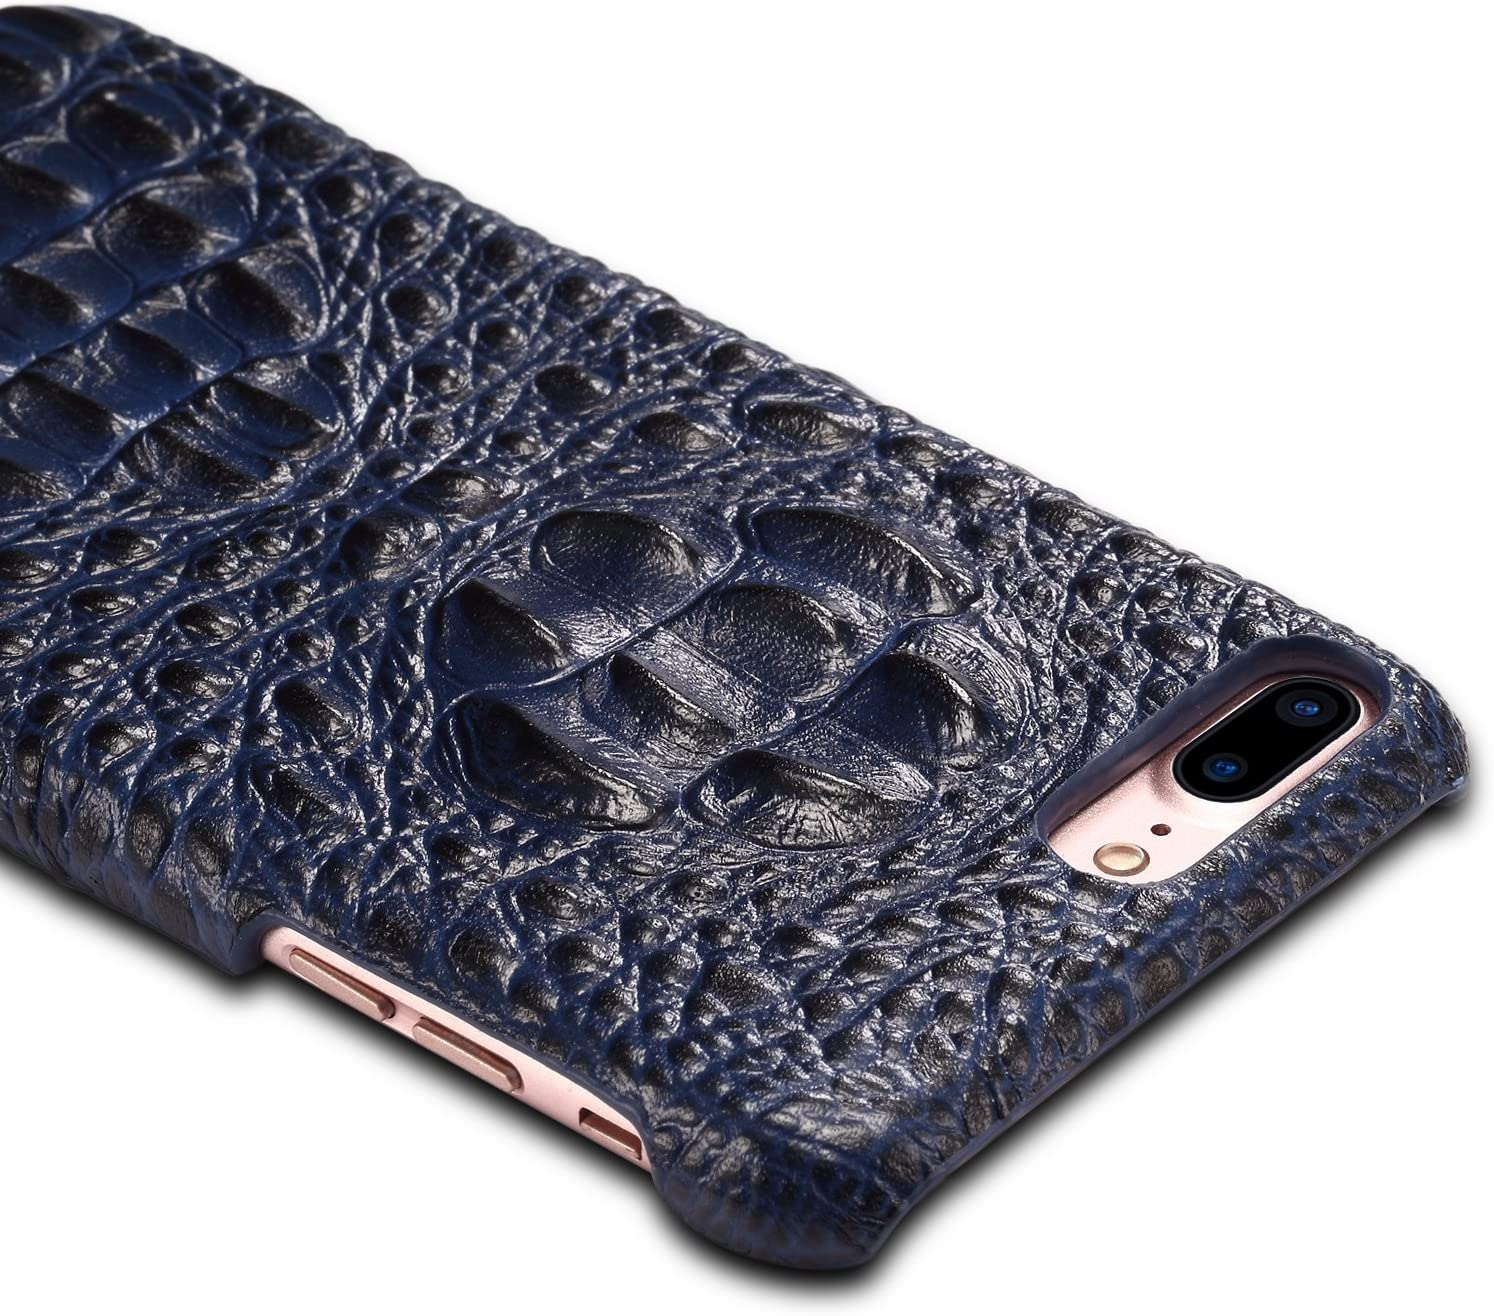 Genuine Leather Case for iPhone 8 Plus,3D Crocodile Pattern Premium Leather Back Cover Case for iPhone 6//iPhone 6s//iPhone 7//iPhone 8//iPhone 7 Plus